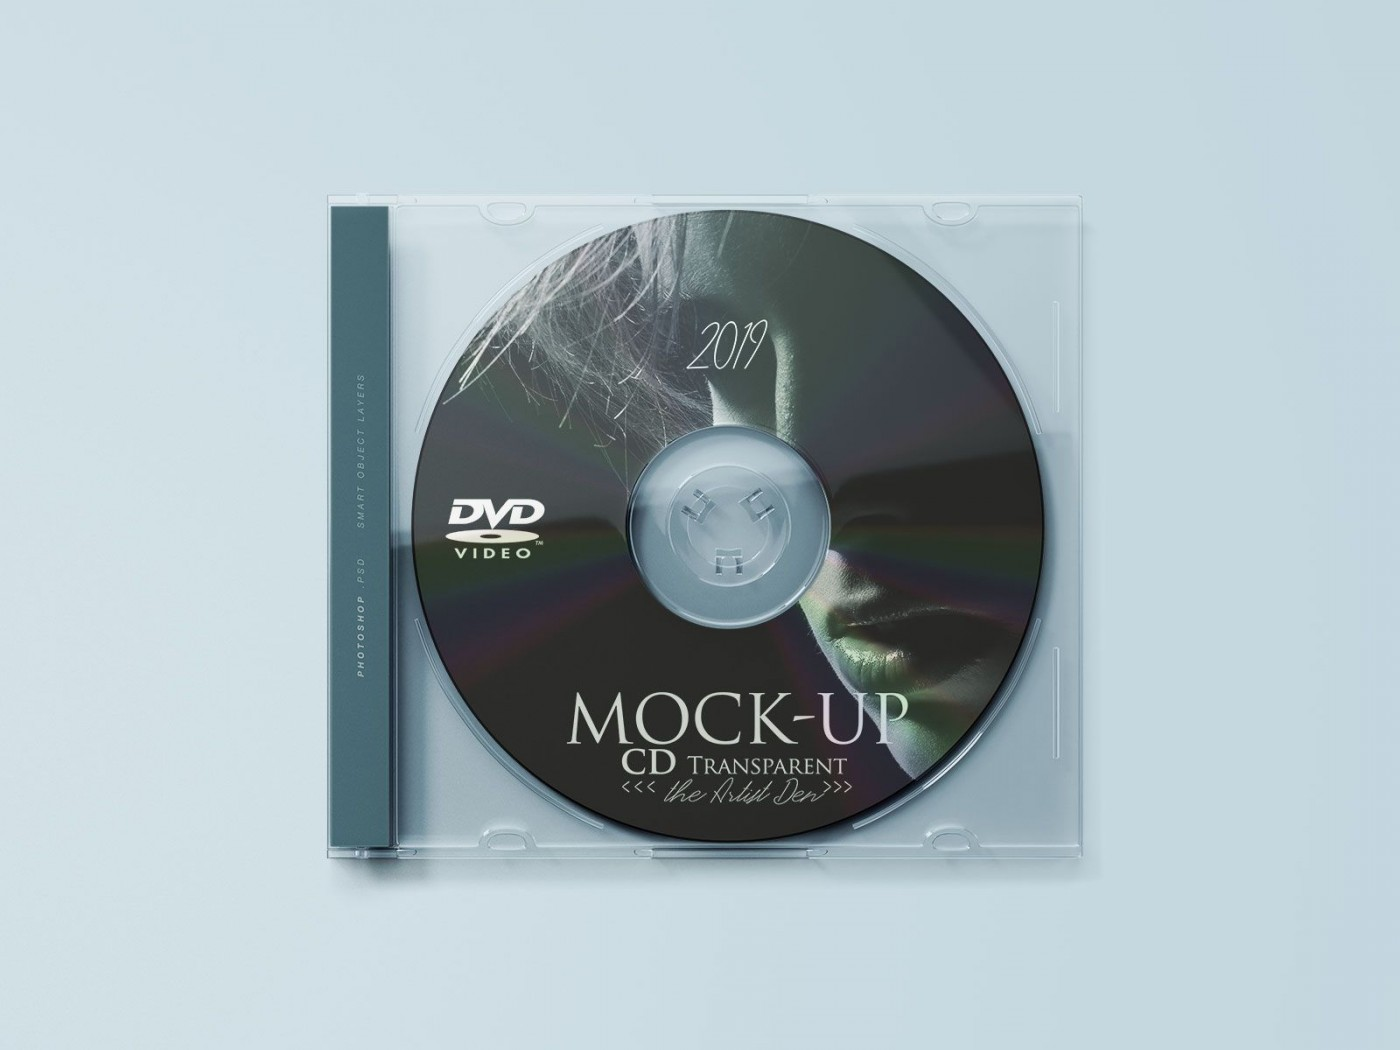 006 Surprising Free Cd Cover Design Template Photoshop High Resolution  Label Psd Download1400